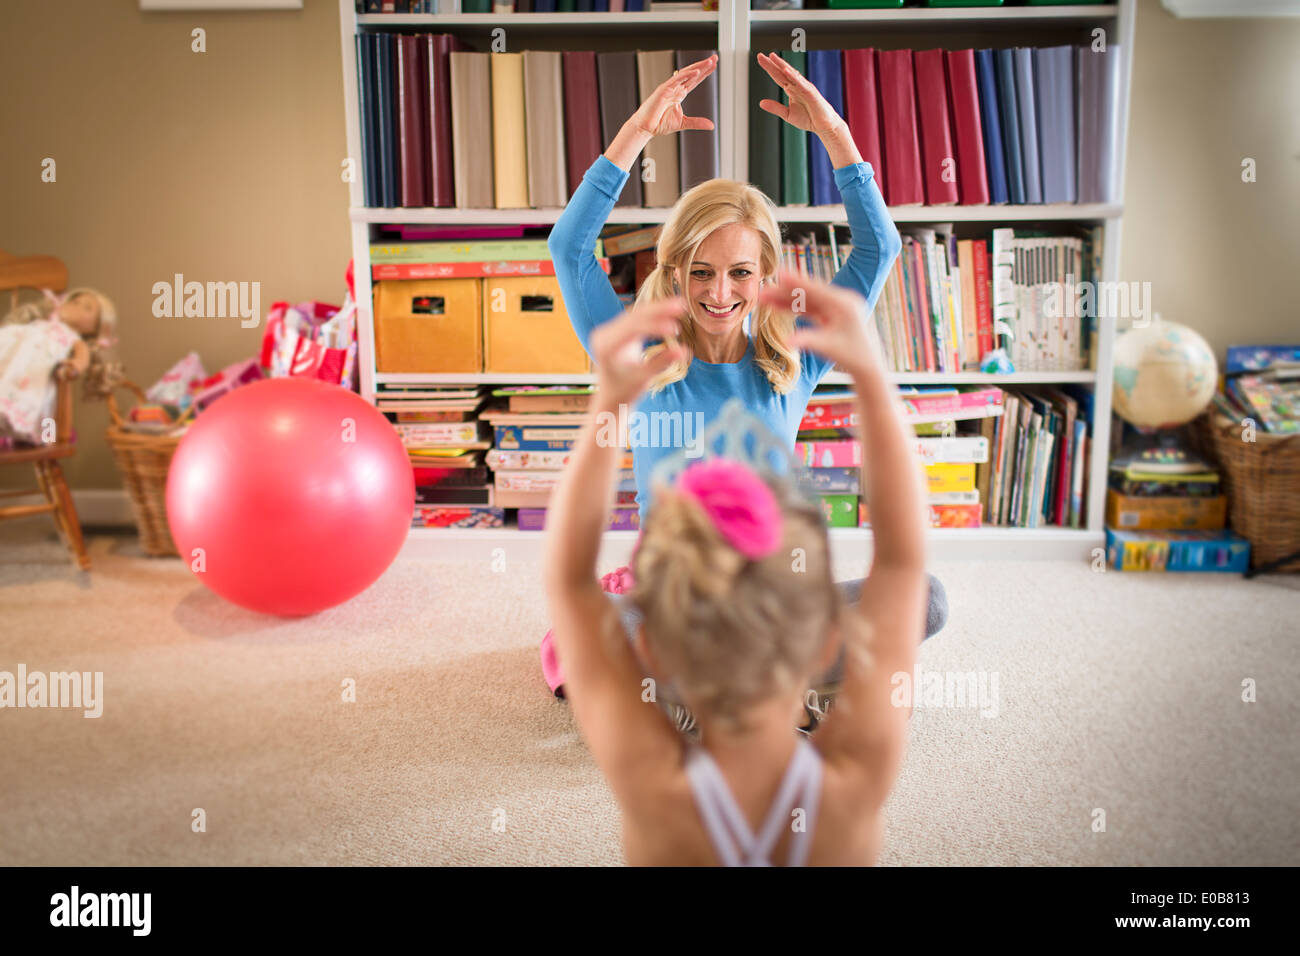 Mother and young daughter practicing ballet in sitting room - Stock Image